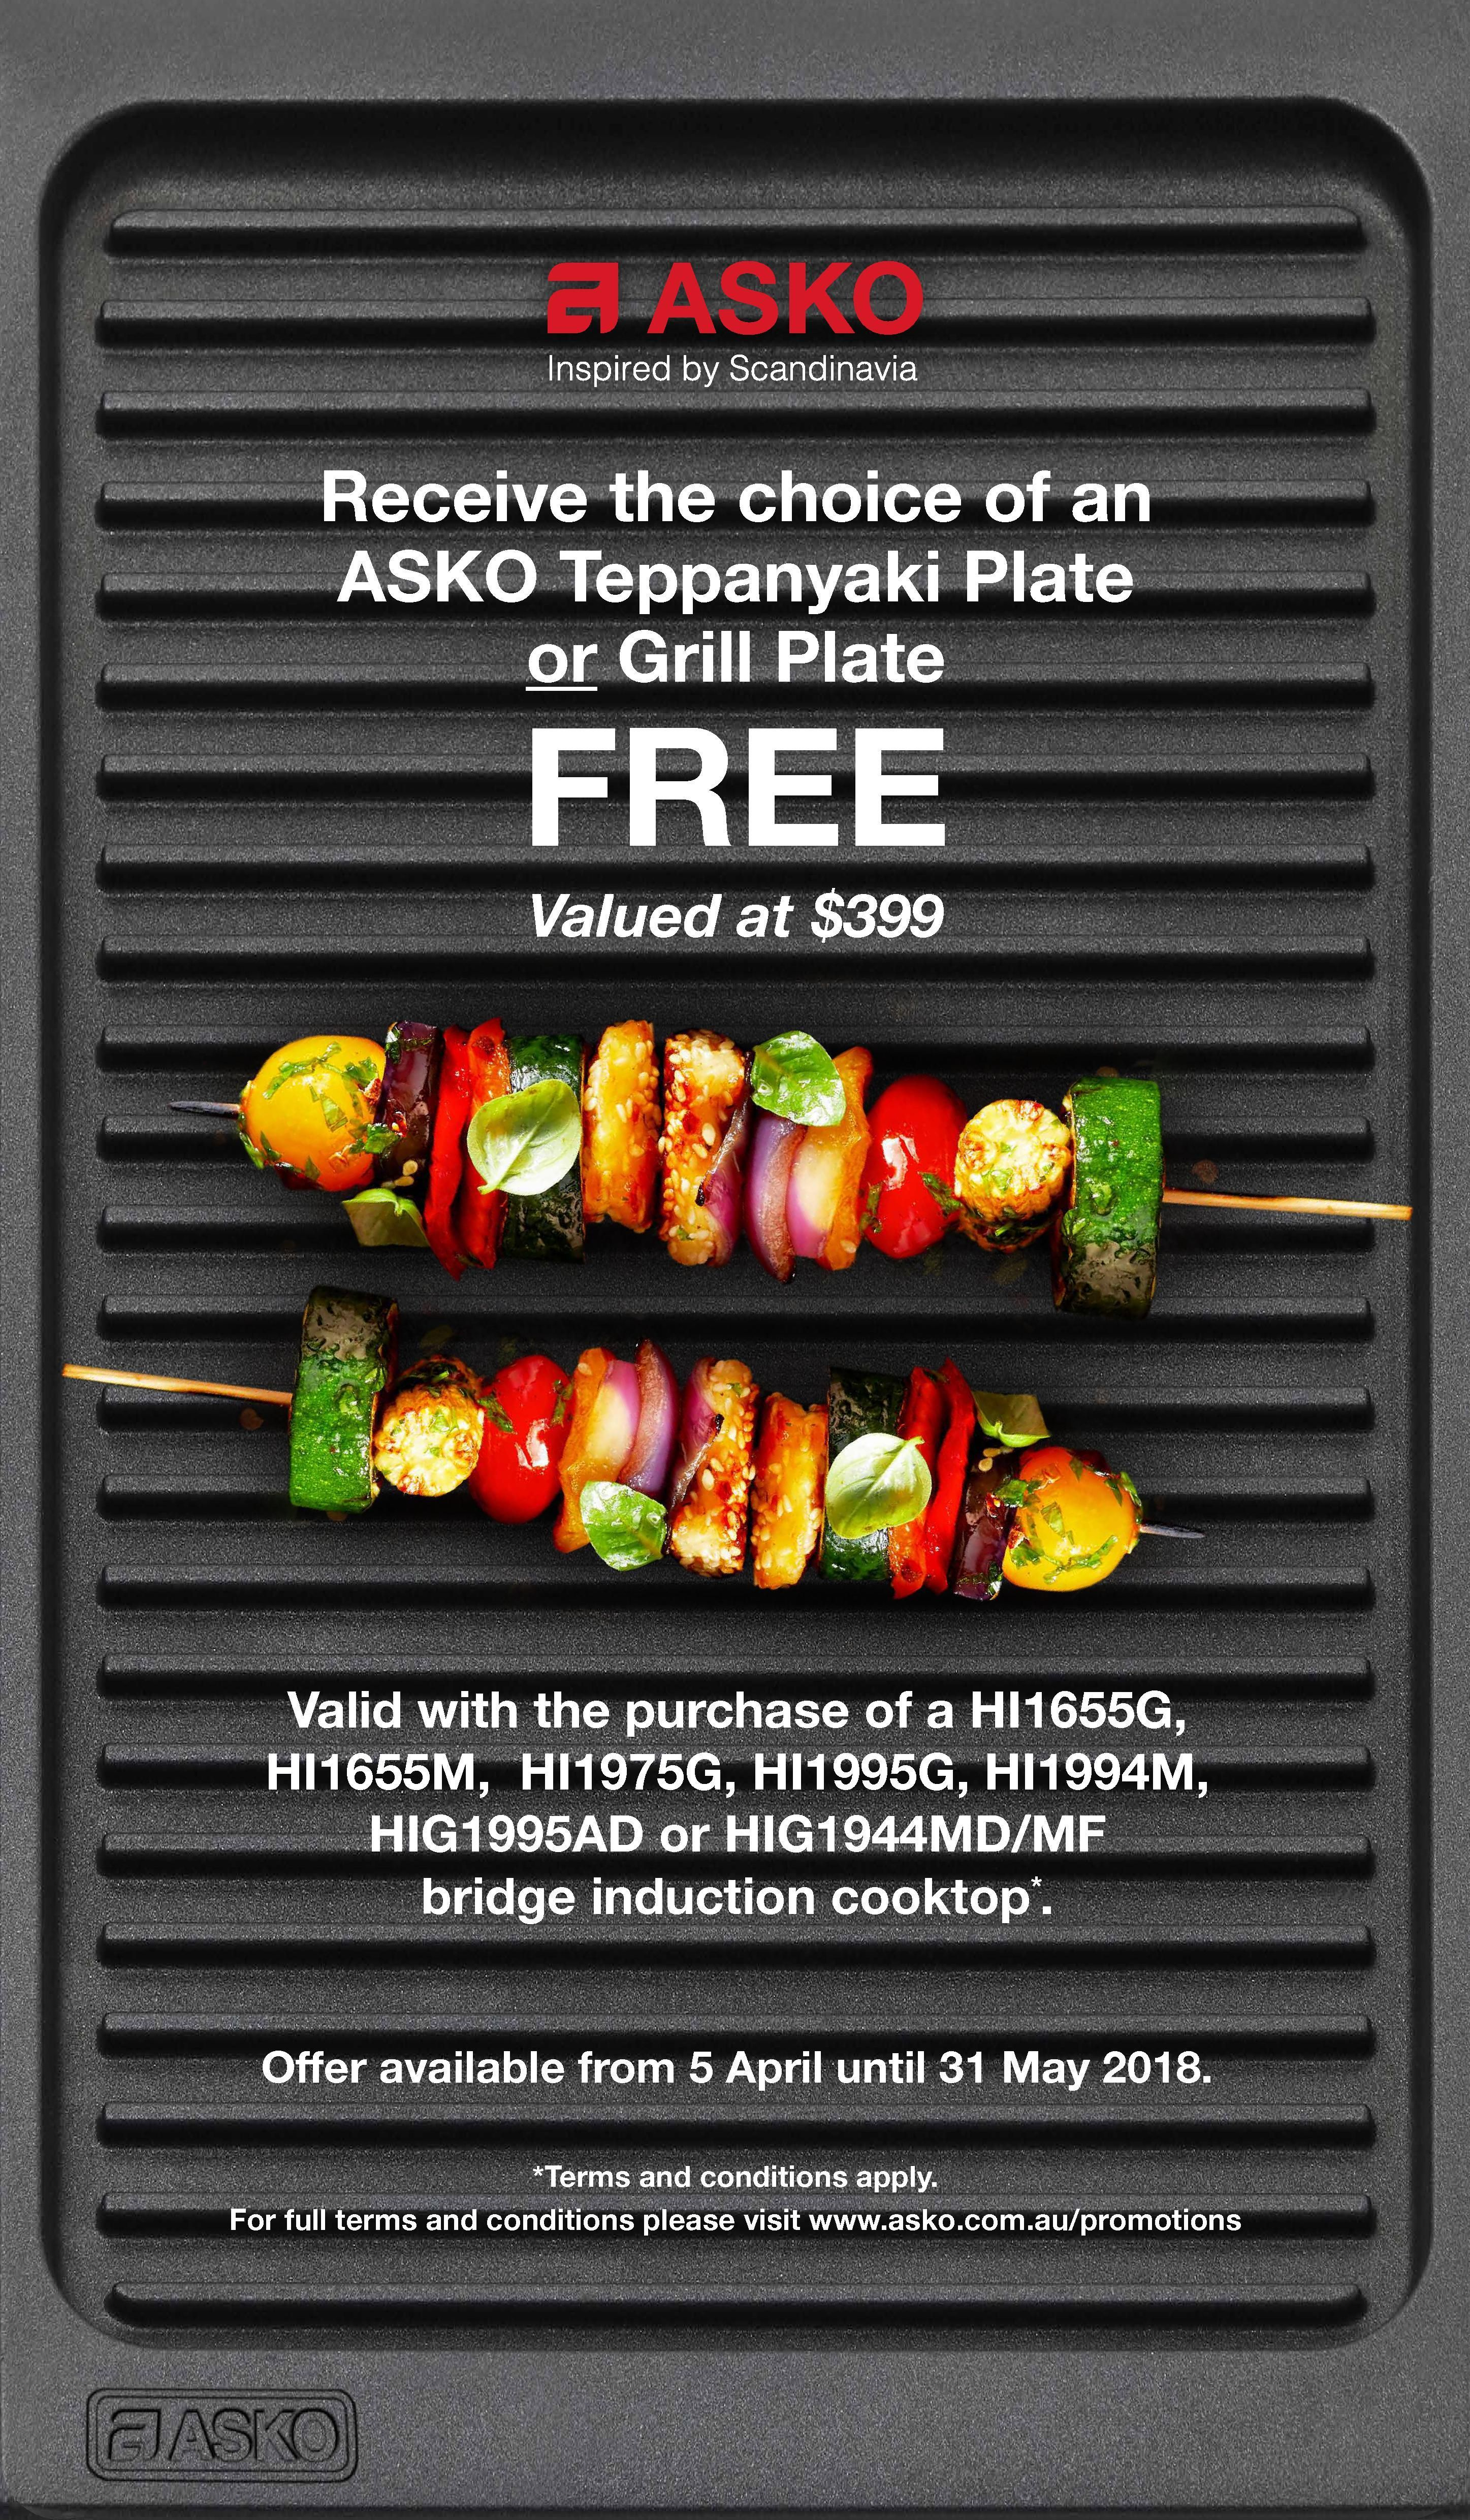 FREE Teppanyaki Or Grill Plate With ASKO Induction Cooktops* Offer Only  Available On Purchases Of New ASKO Induction Cooktops Models As Specified  Below ...